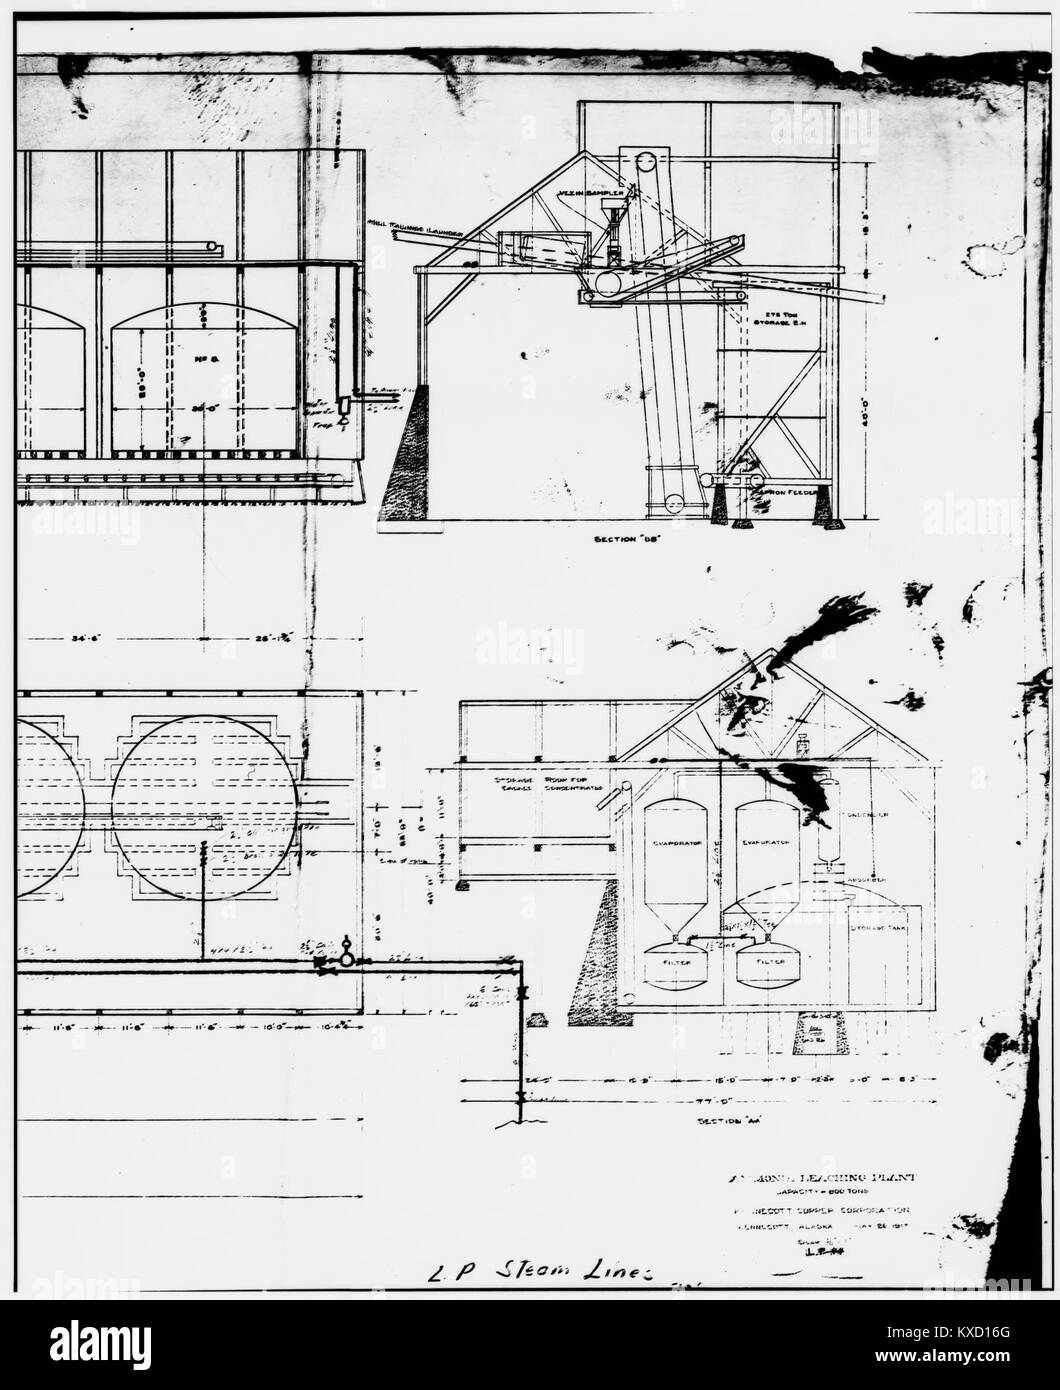 47. PHOTOCOPY OF DRAWING, AMMONIA LEACHING PLANT - Kennecott Copper Corporation, On Copper River ^ Northwestern - Stock Image